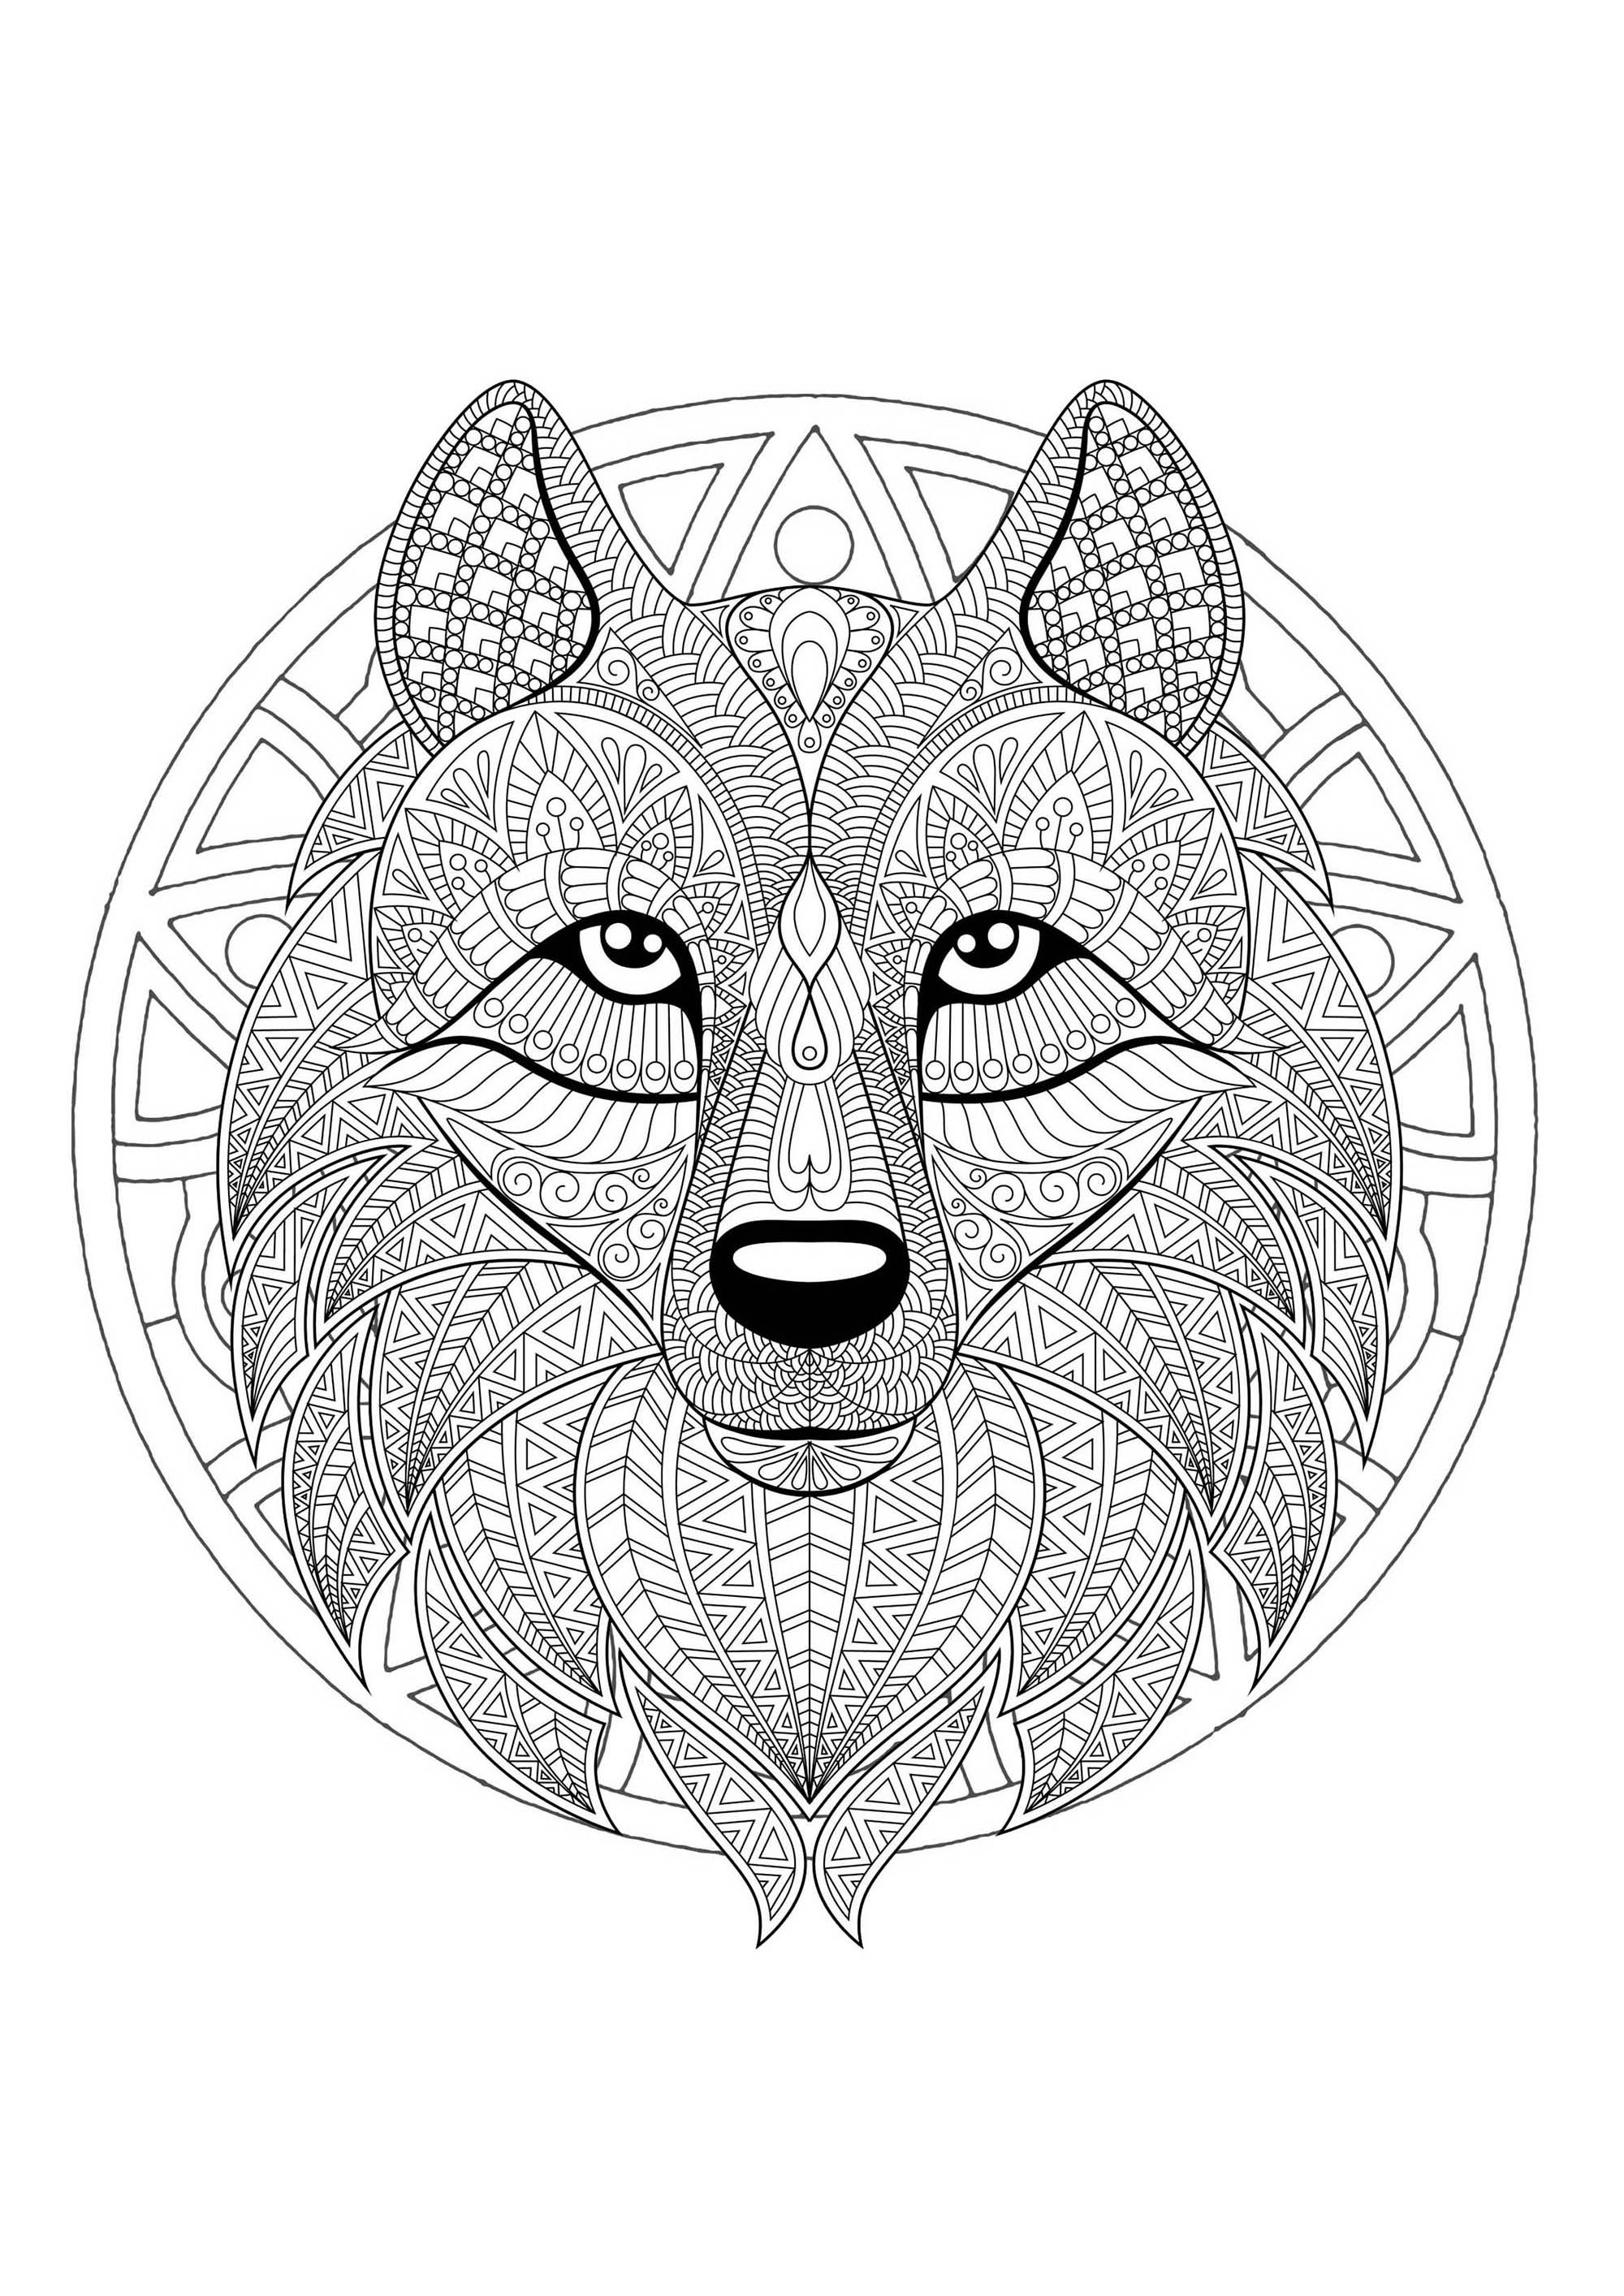 mandalas to color for adults simple floral mandala mandalas adult coloring pages to for color mandalas adults